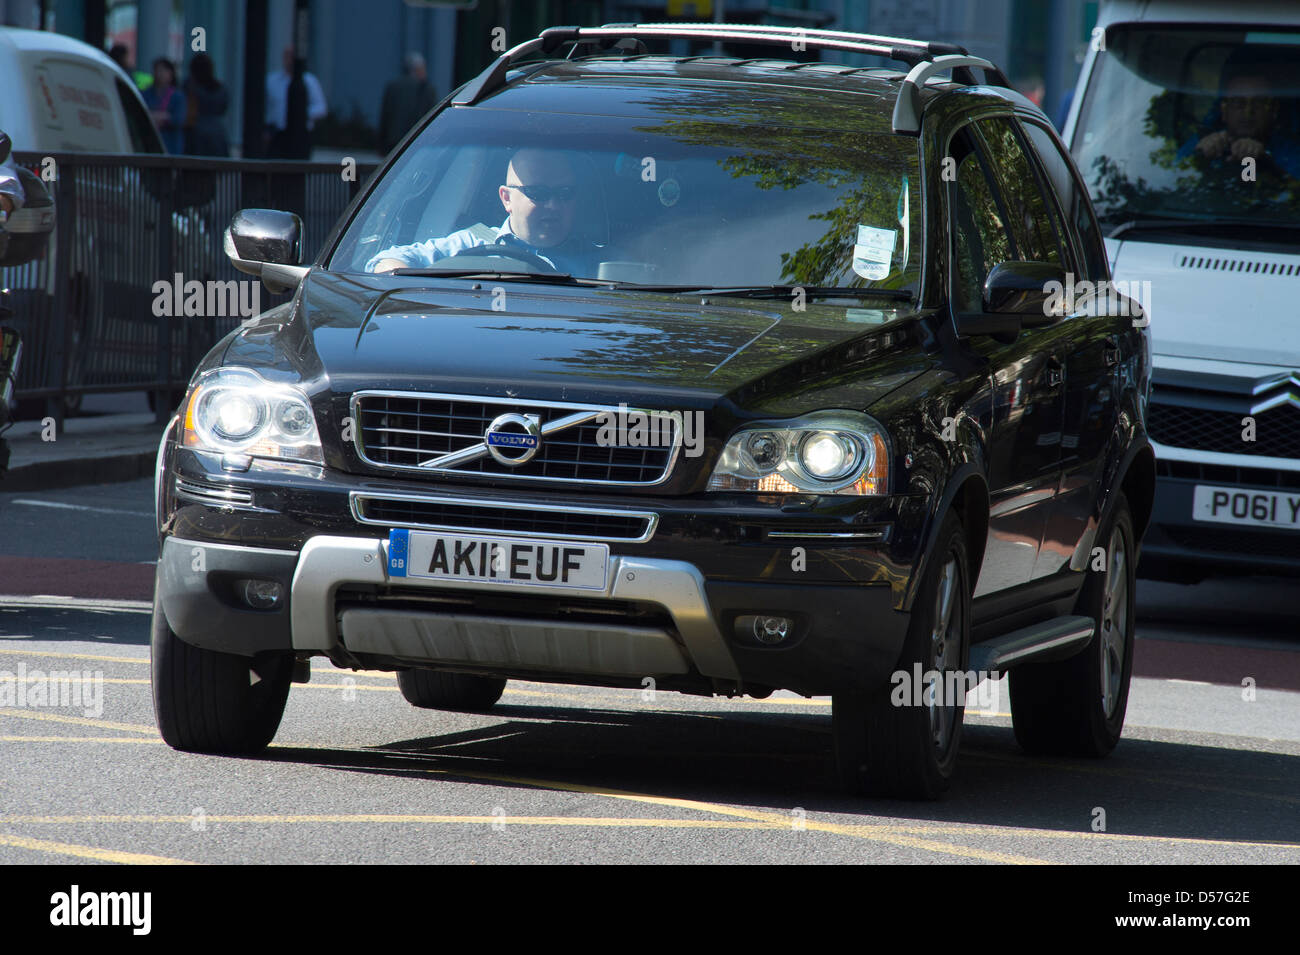 Volvo car being driven in city centre traffic, England. - Stock Image